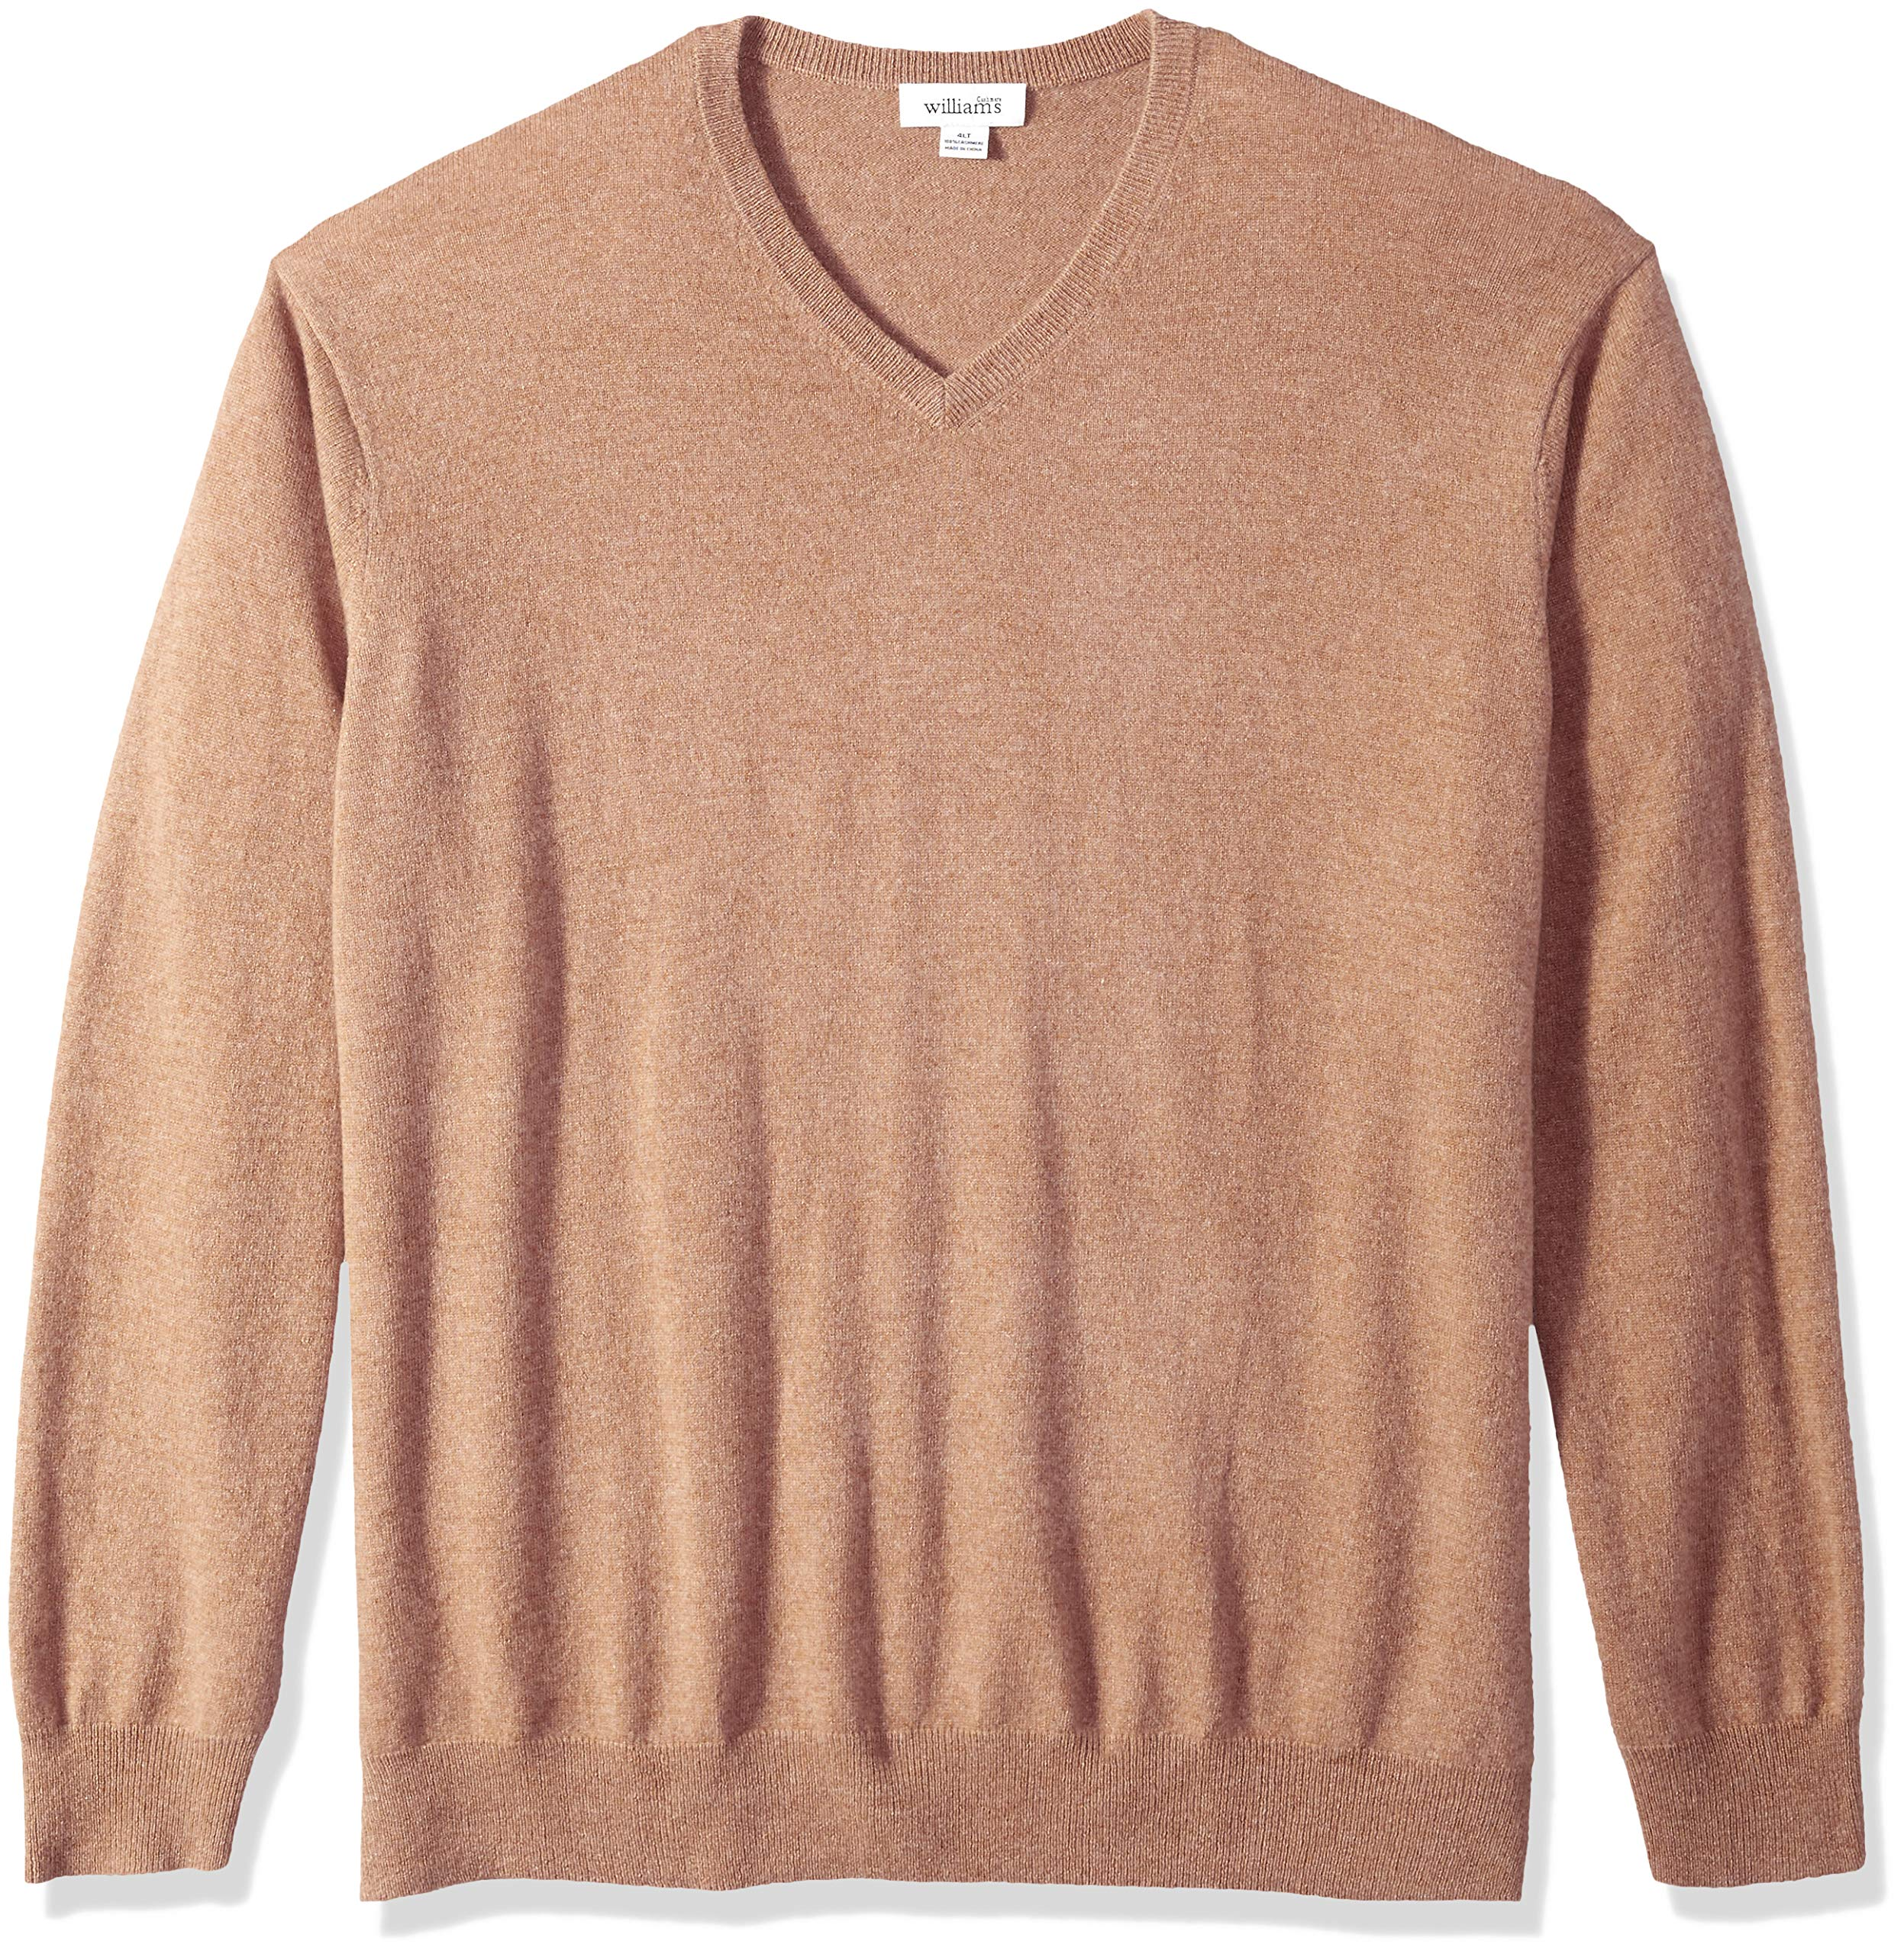 Williams Cashmere Men's Big and Tall 100% Cashmere V Neck Pullover Sweater, Camel 2XB